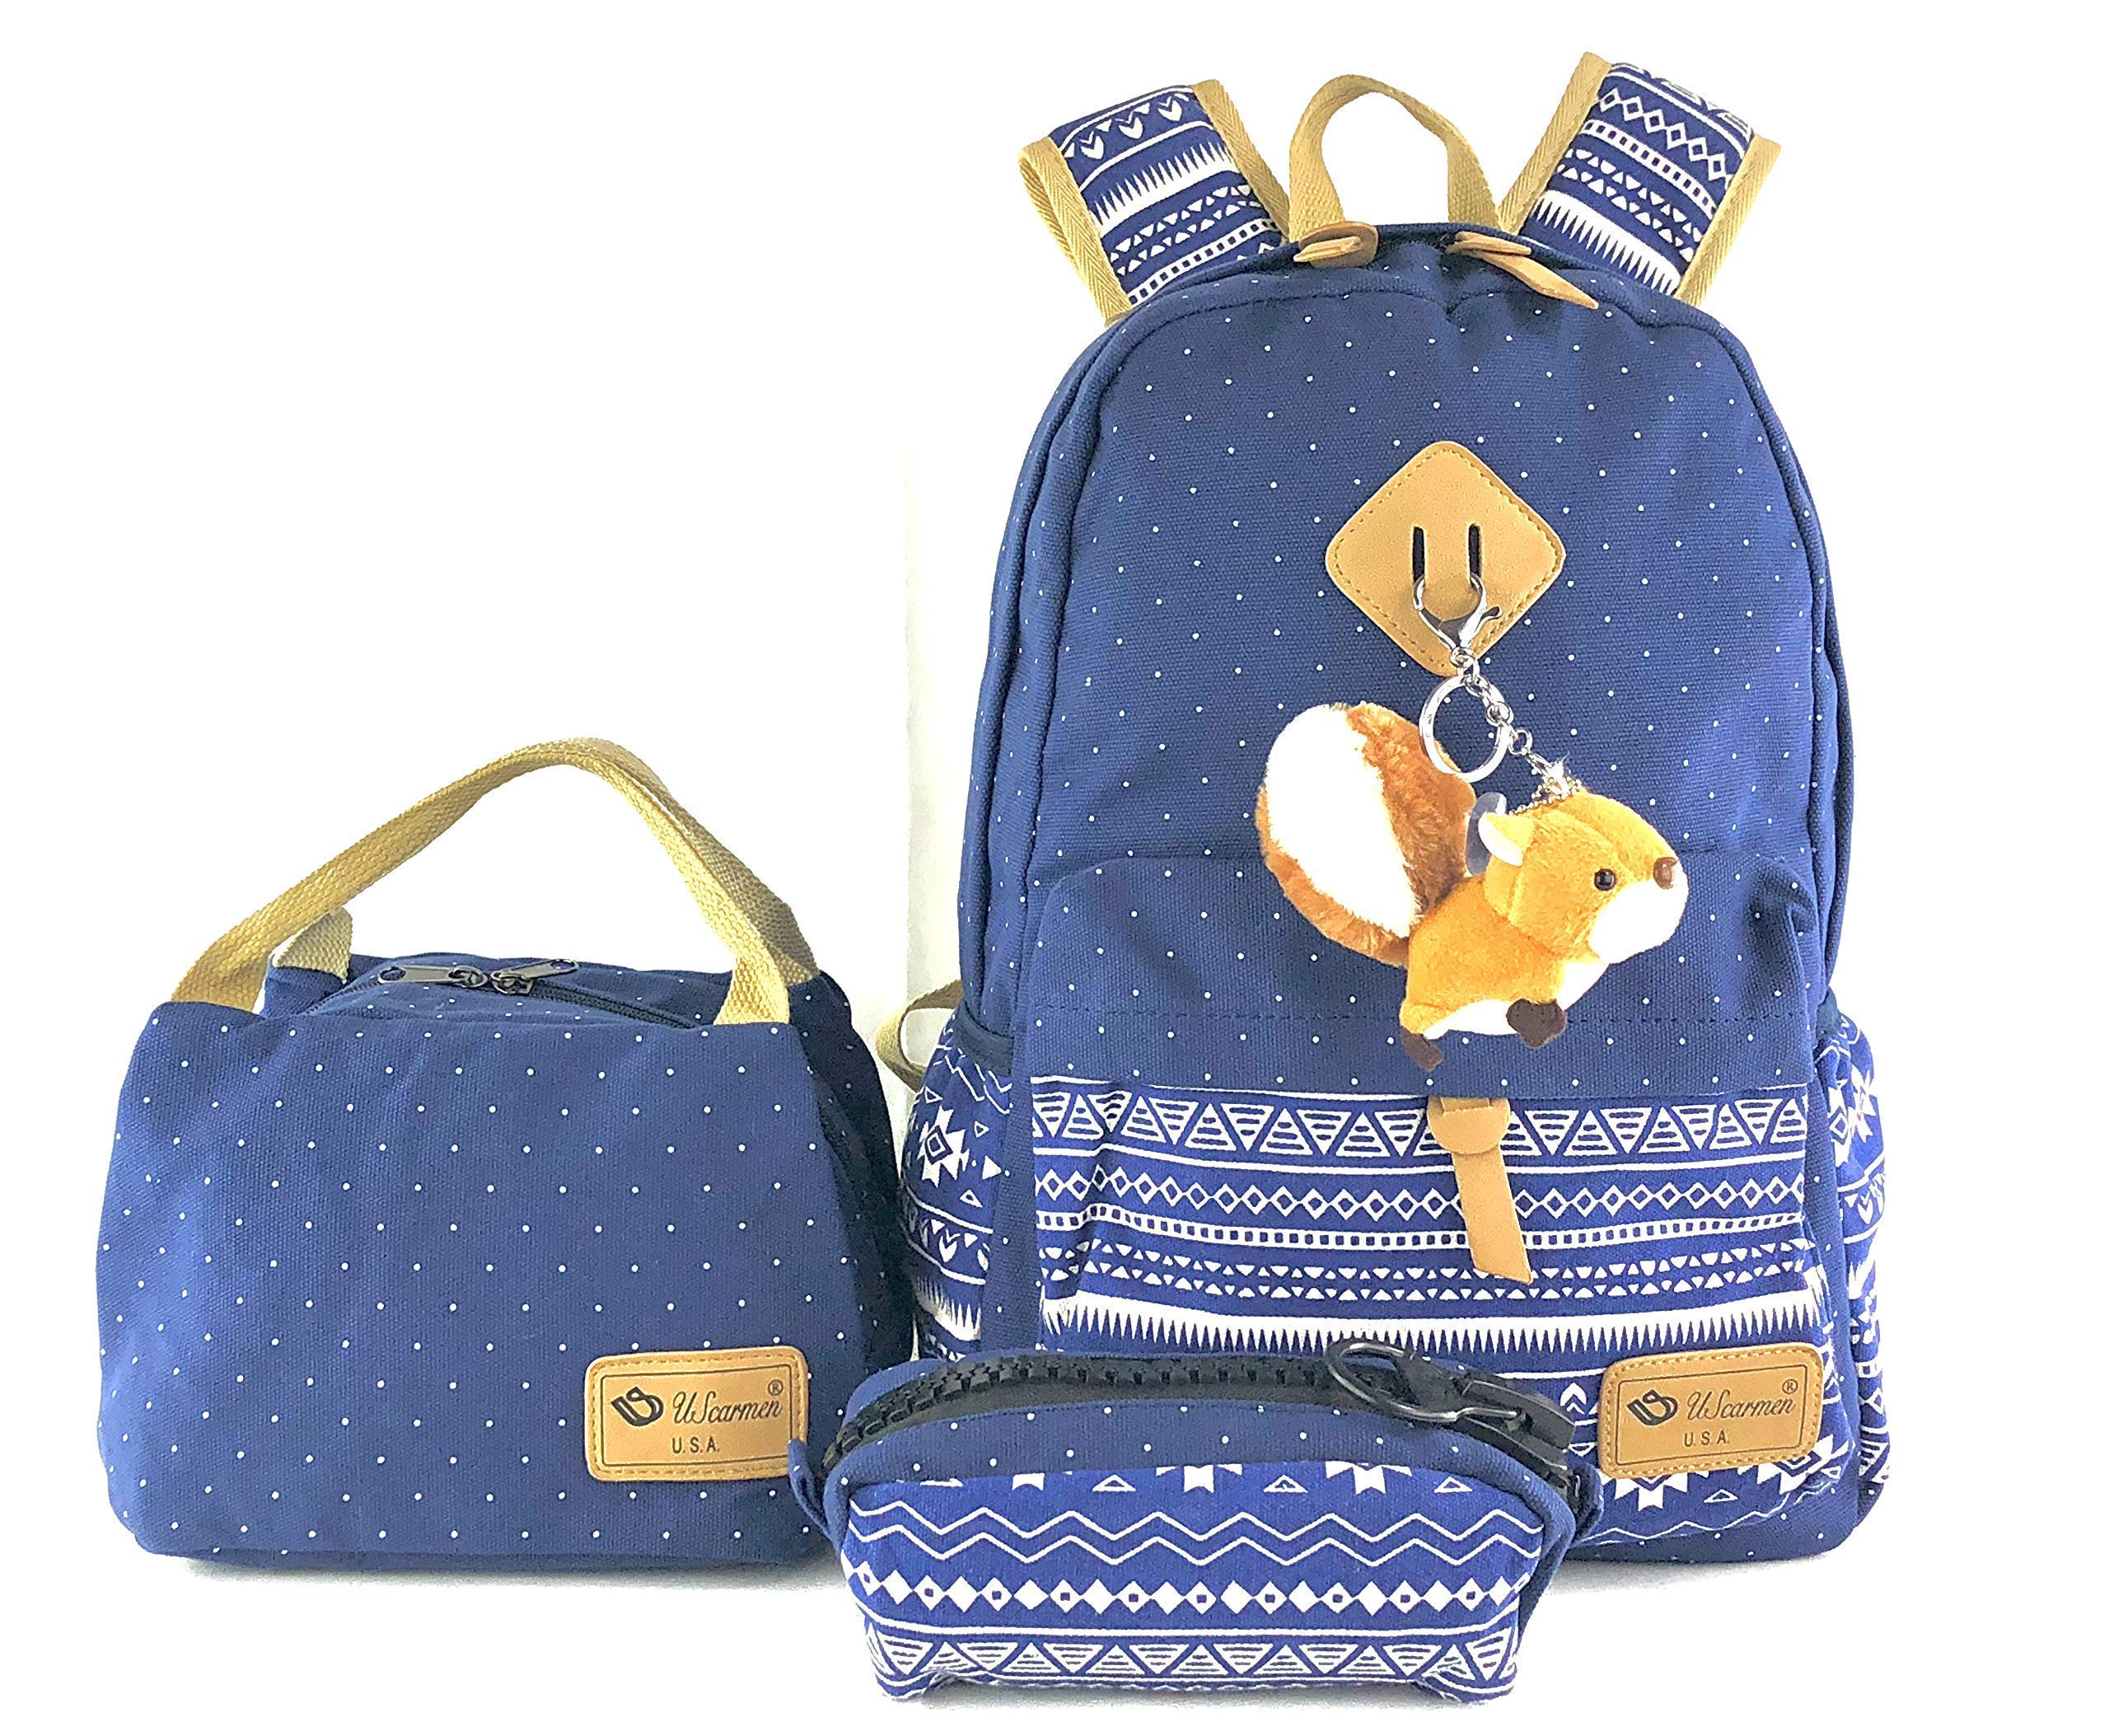 baaa4bd6b37d Women's Boy's Girl Canvas Backpack, Lunch Bag, Pouch Bag 3Pcs. Set for  School Laptop and More (Color Blue)